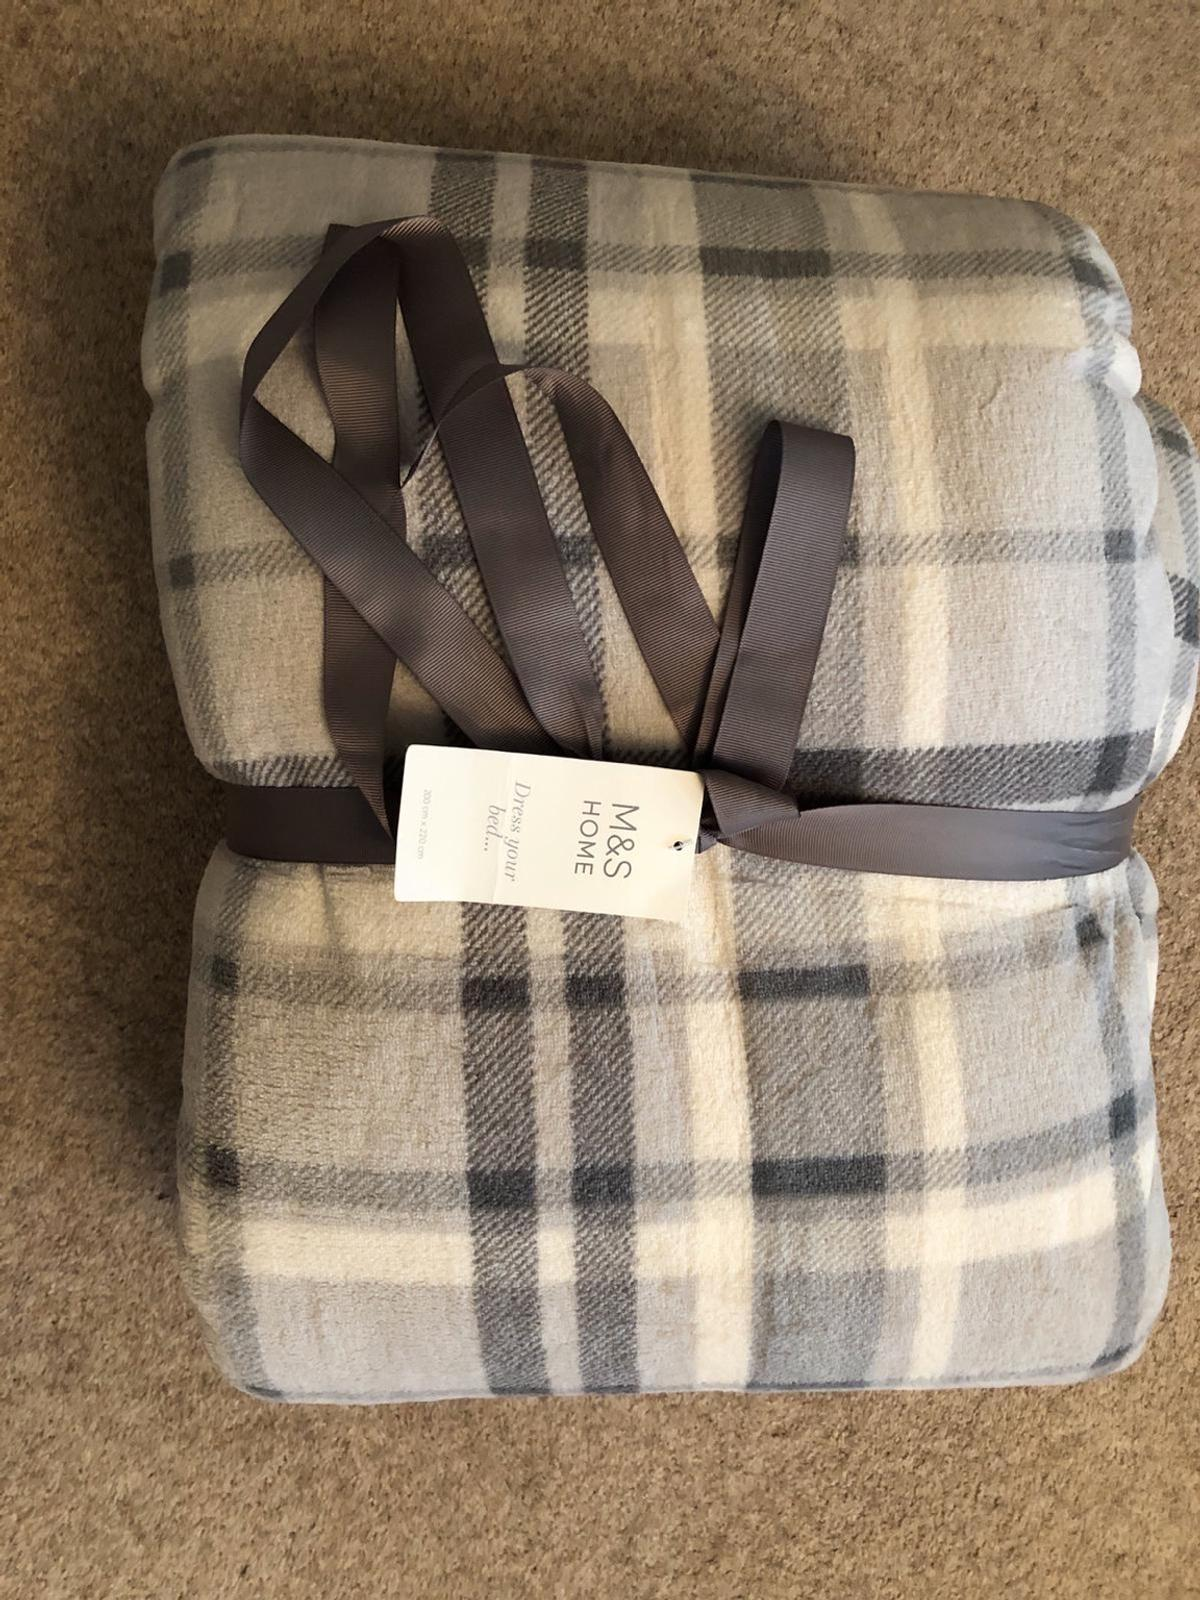 200cm x 220cm grey and white blanket. Brand new soft blanket to dress your bed with.